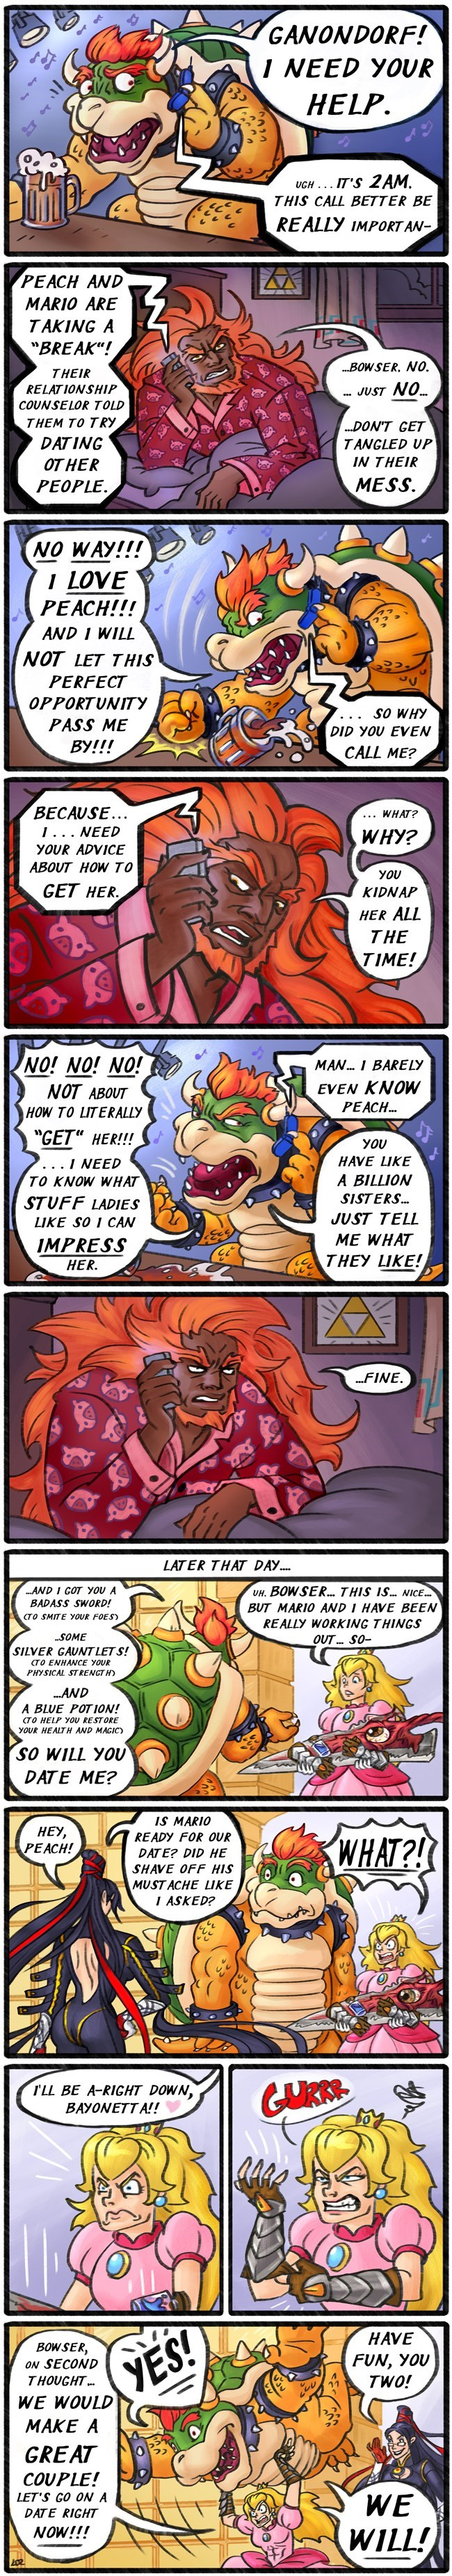 princess peach bowser funny nintendo web comics - 8802443008